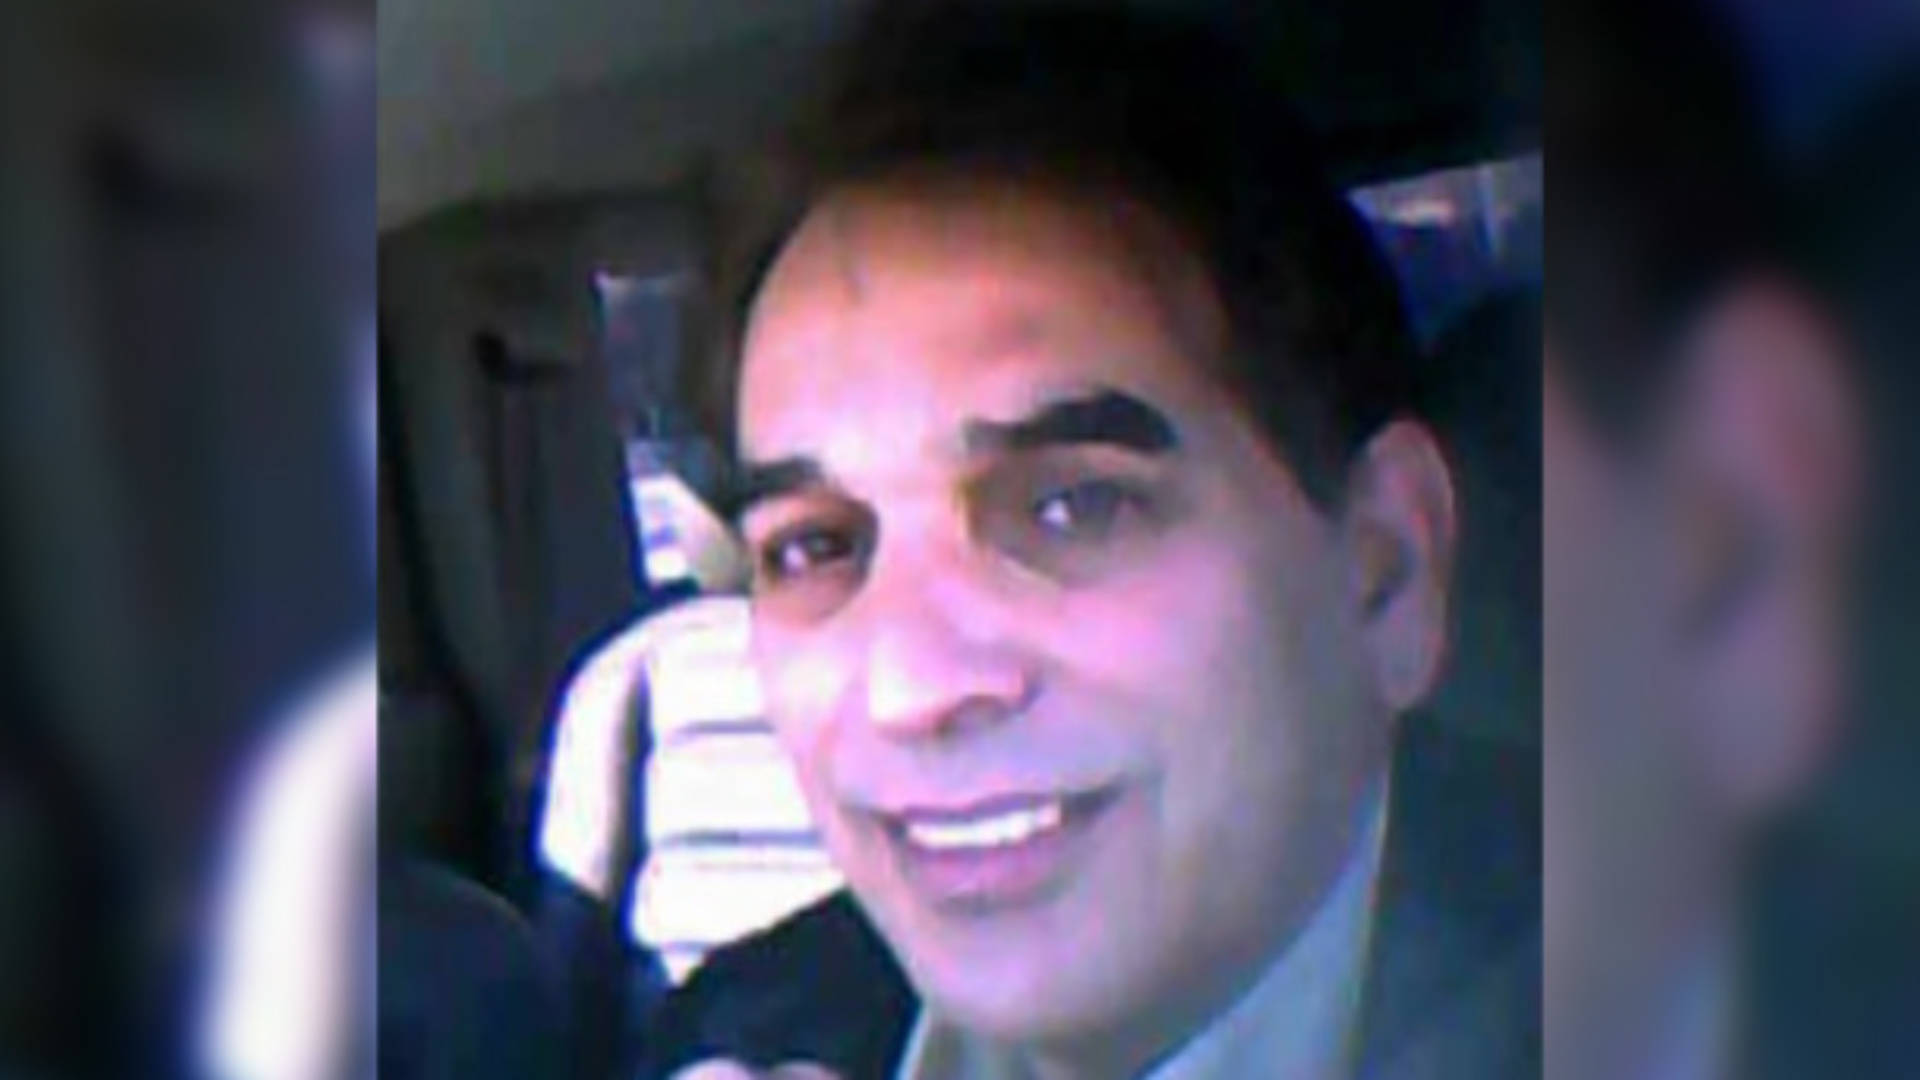 Owner of Limo Involved in Deadly NY Crash Spent Years as FBI Informant Entrapping Muslim Men